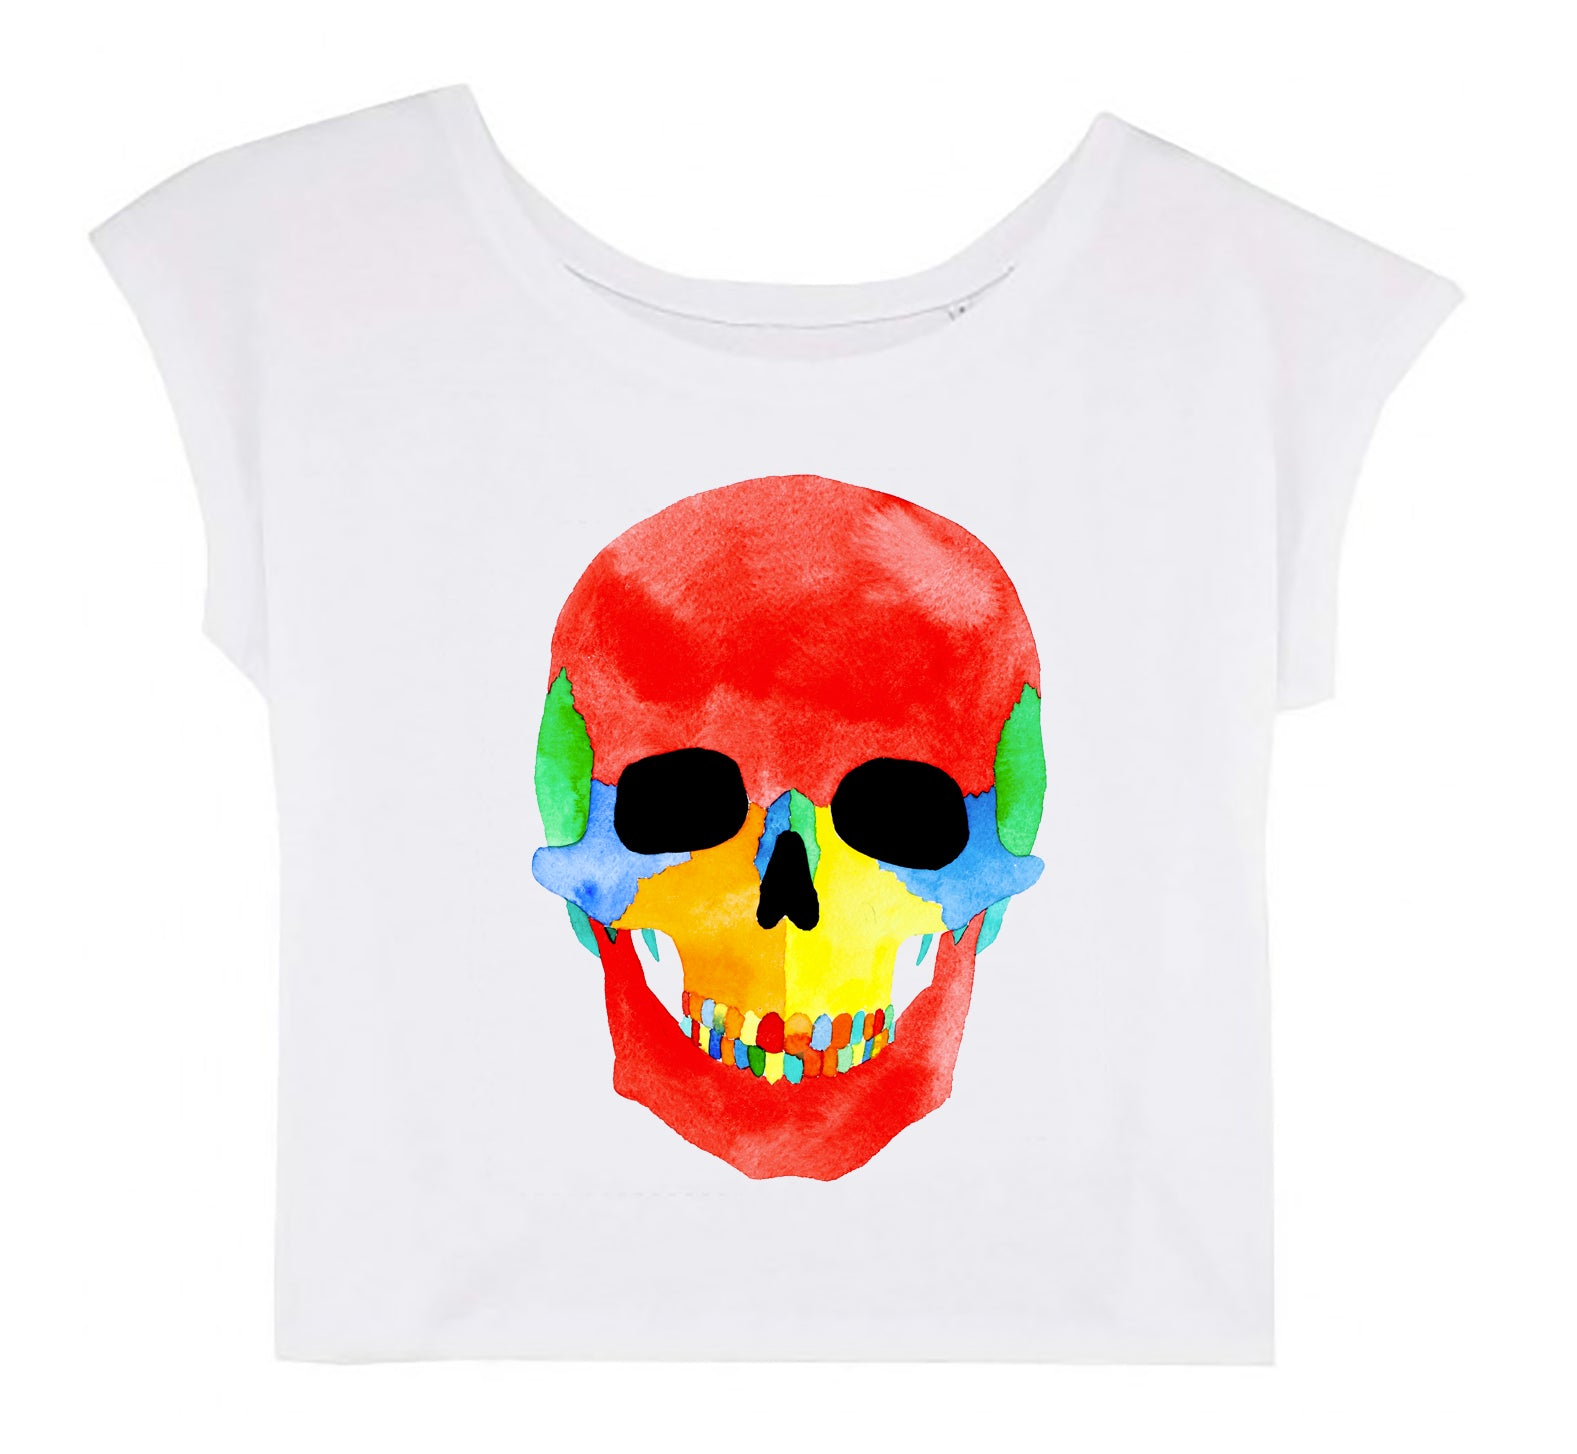 Women's Cropped T-shirt - Skull